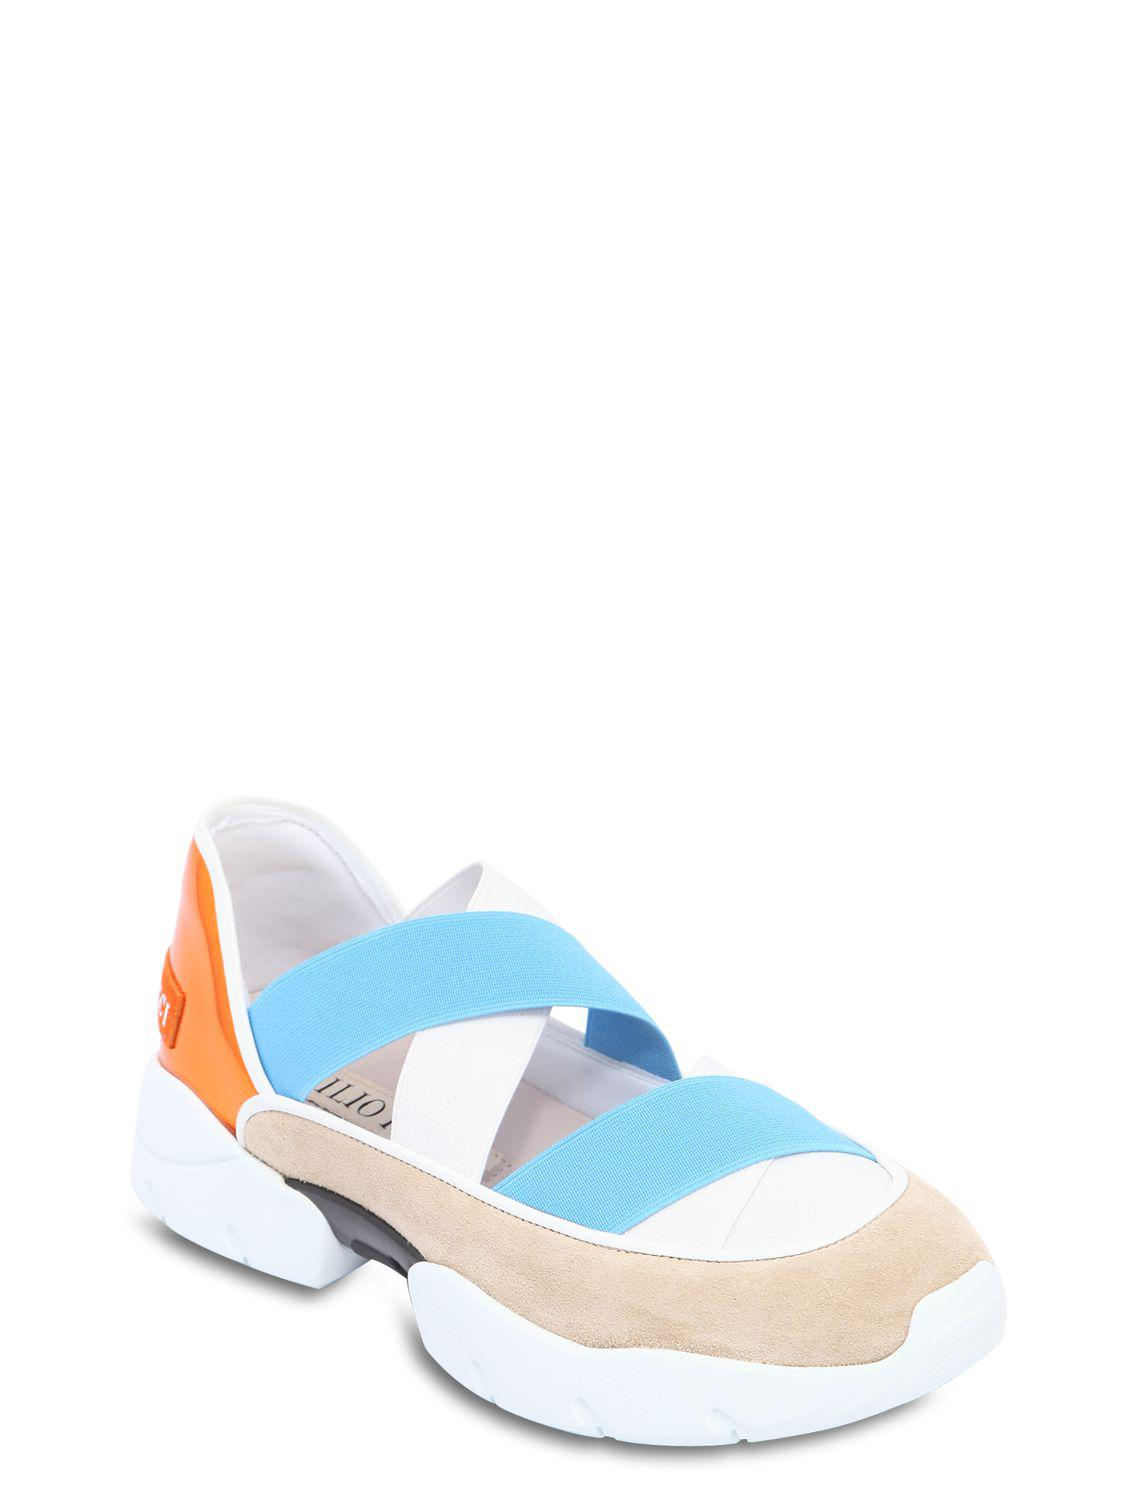 Emilio Pucci 30MM SUEDE & ELASTIC SANDAL SNEAKERS Outlet Latest Collections Cheap Sale Reliable Free Shipping High Quality fOJouf